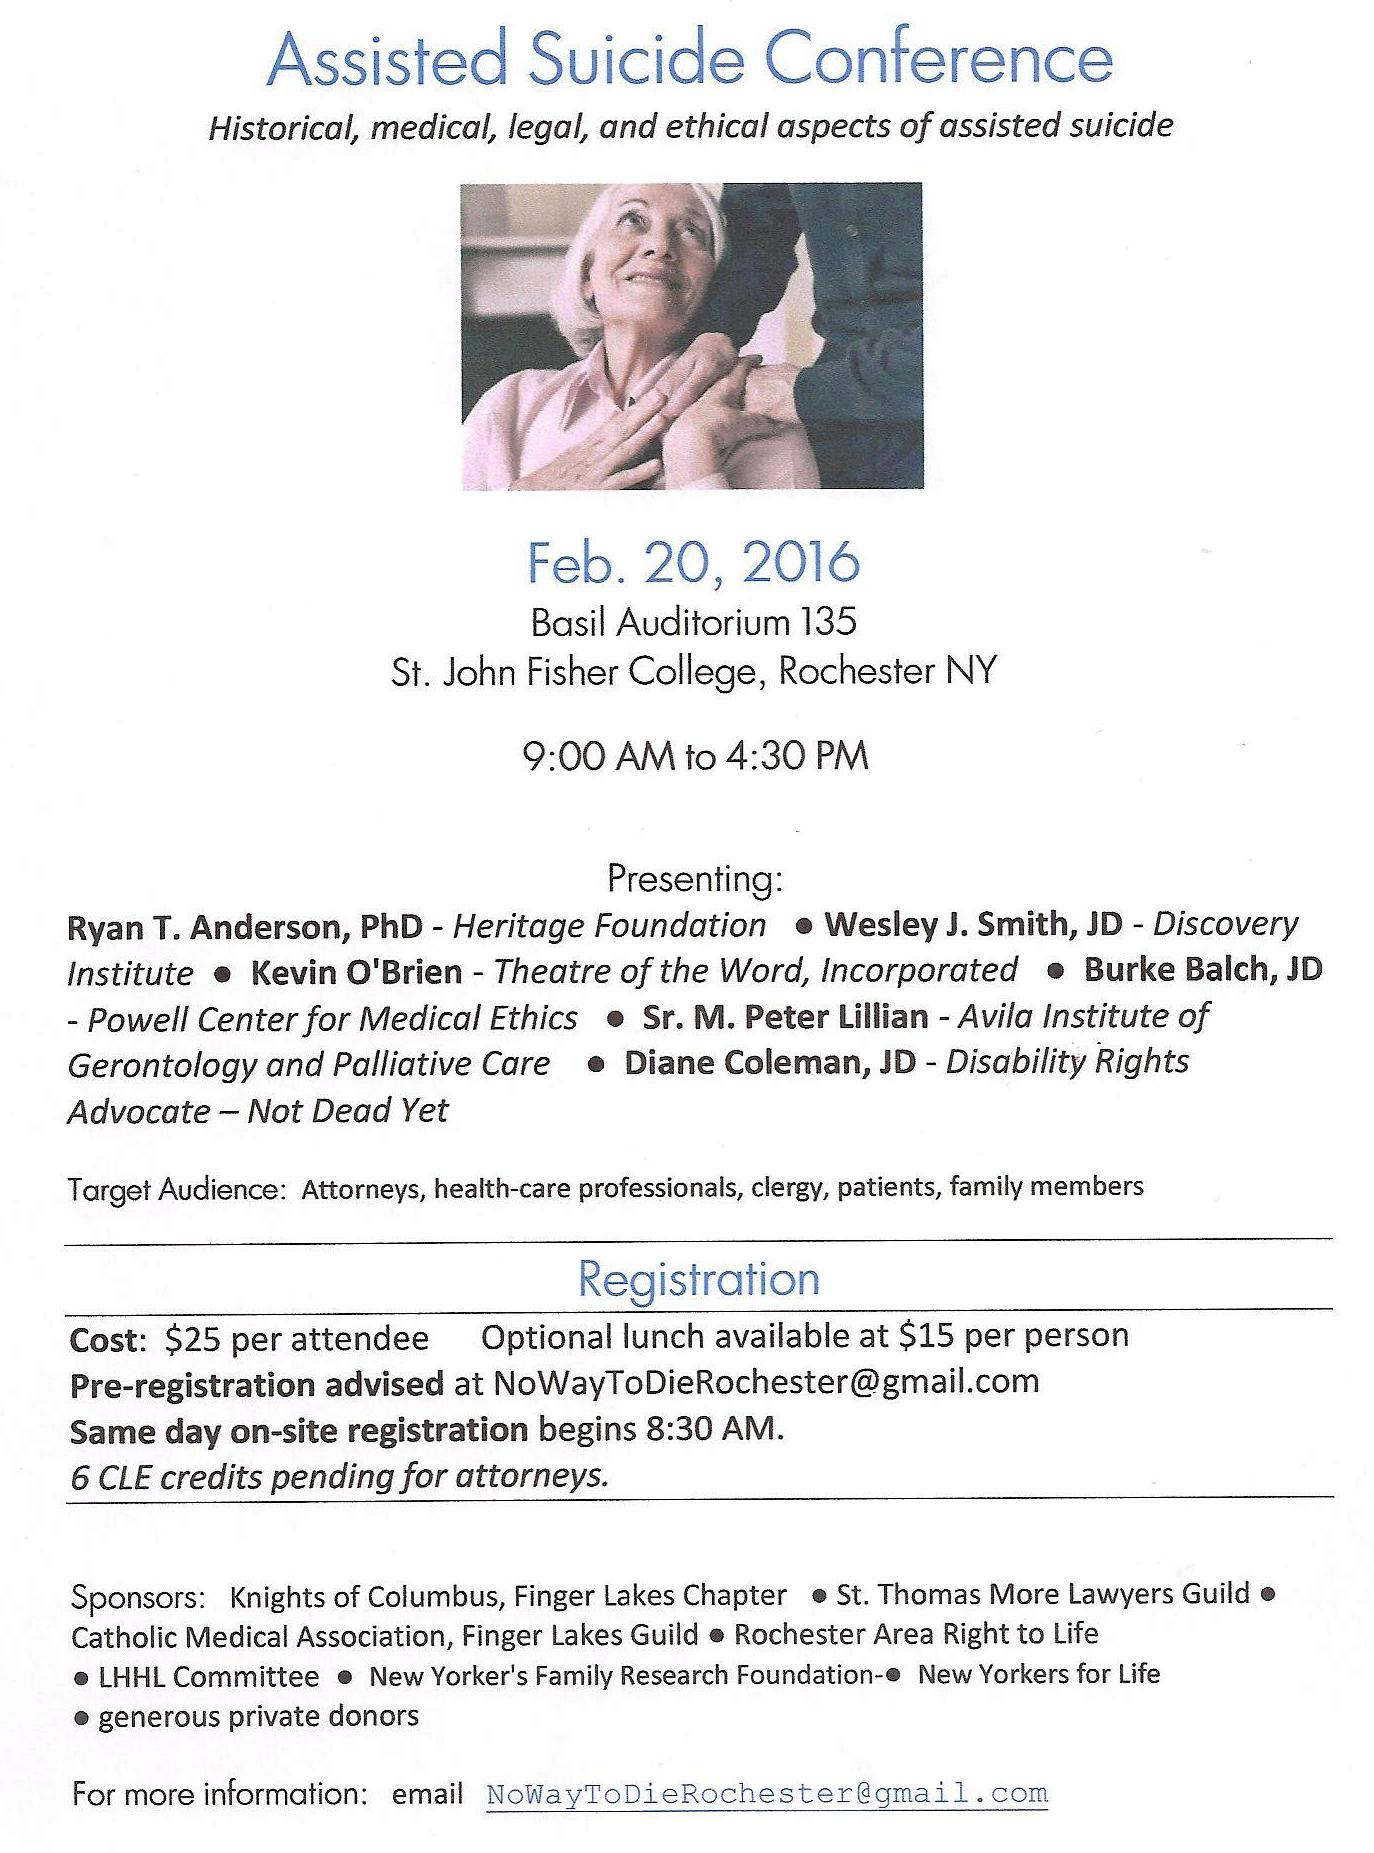 Euthanasia Conference